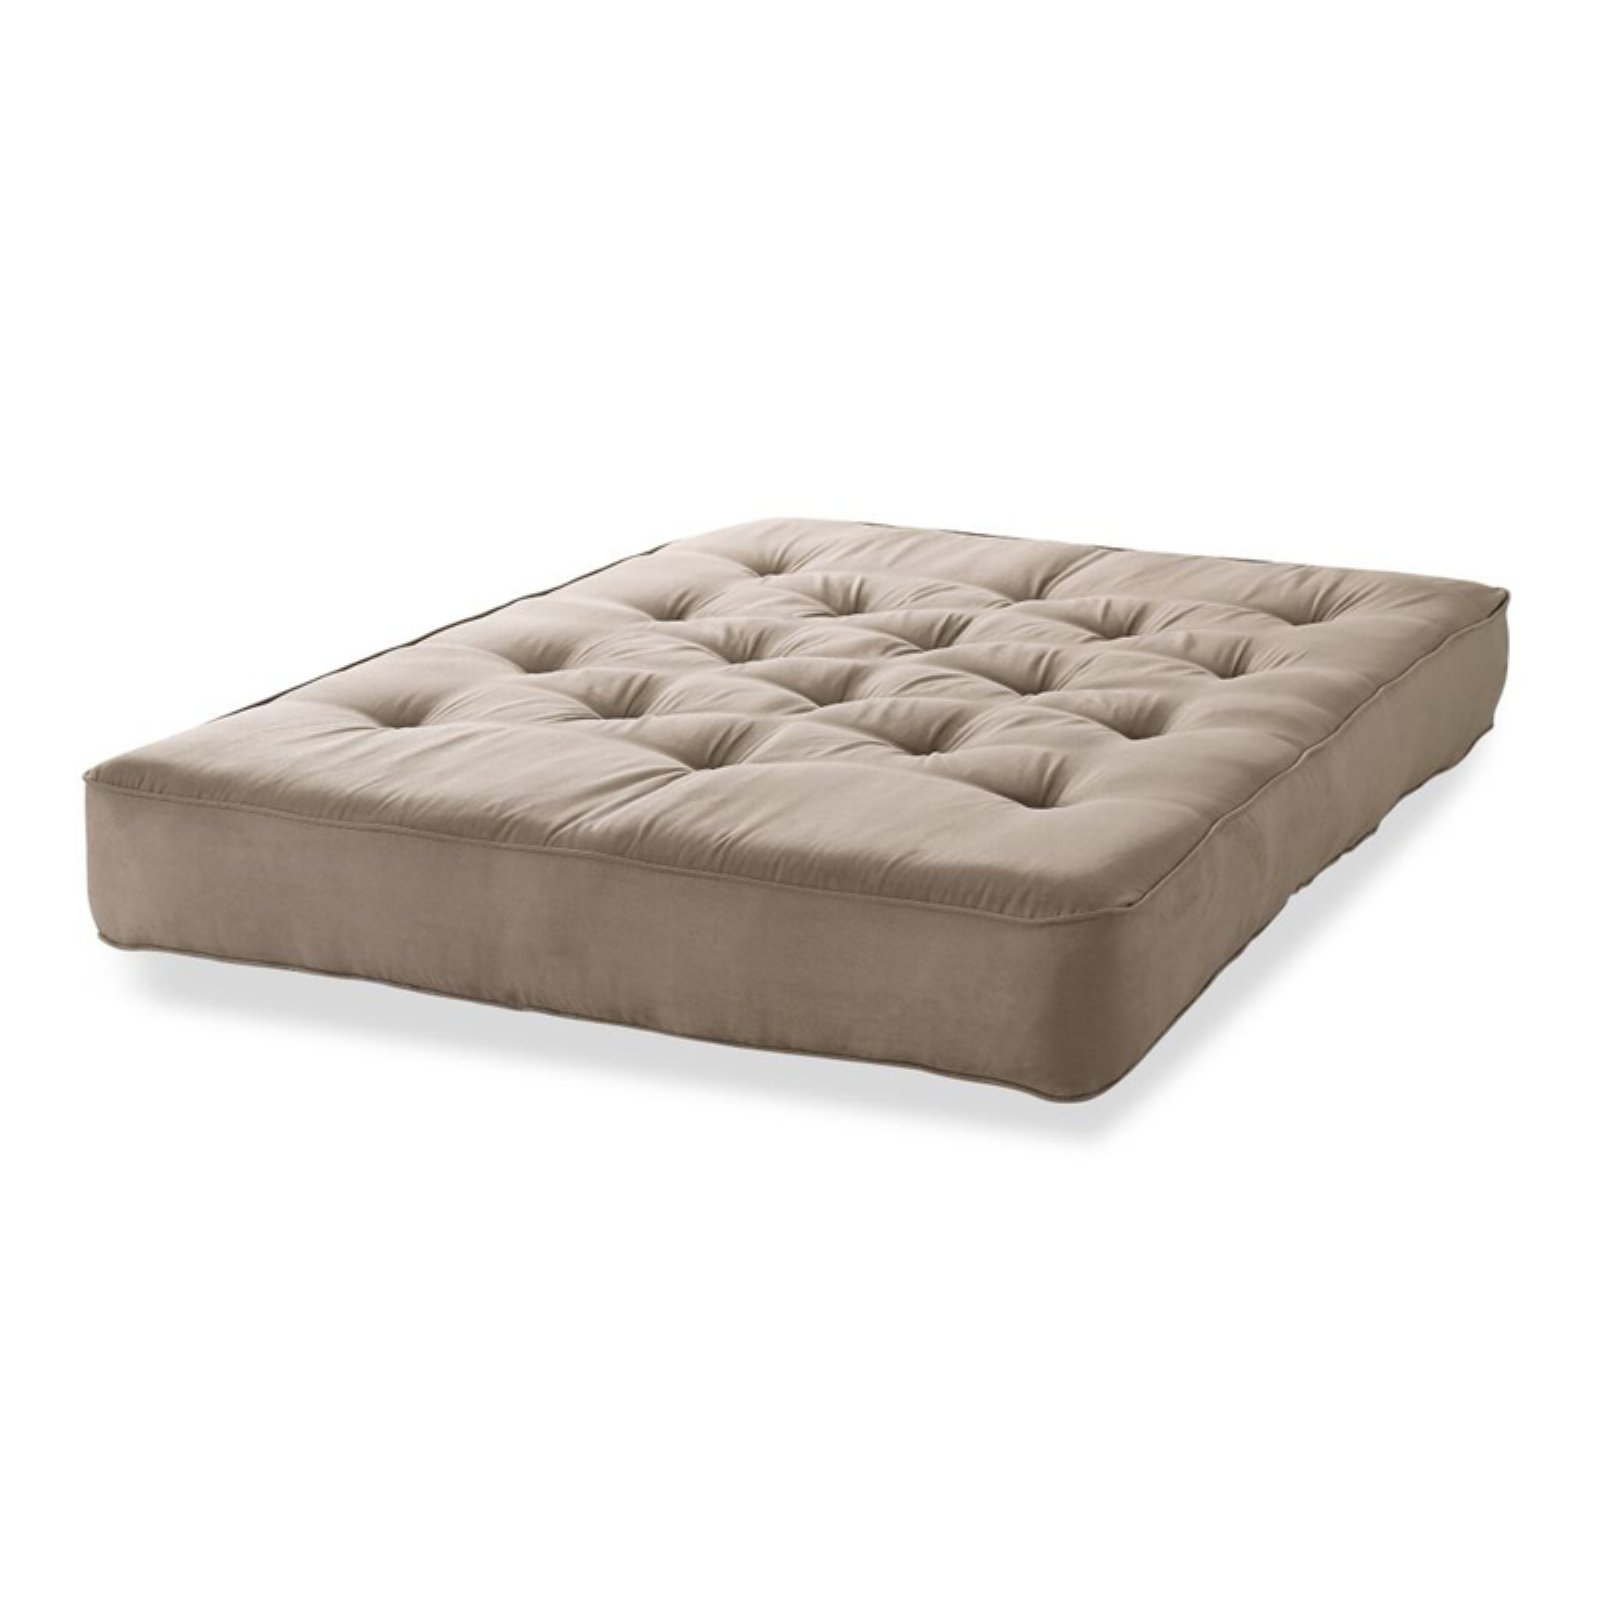 Simmons Beautyrest 8 in. Pocketed Coil Innerspring Futon Mattress by Overstock